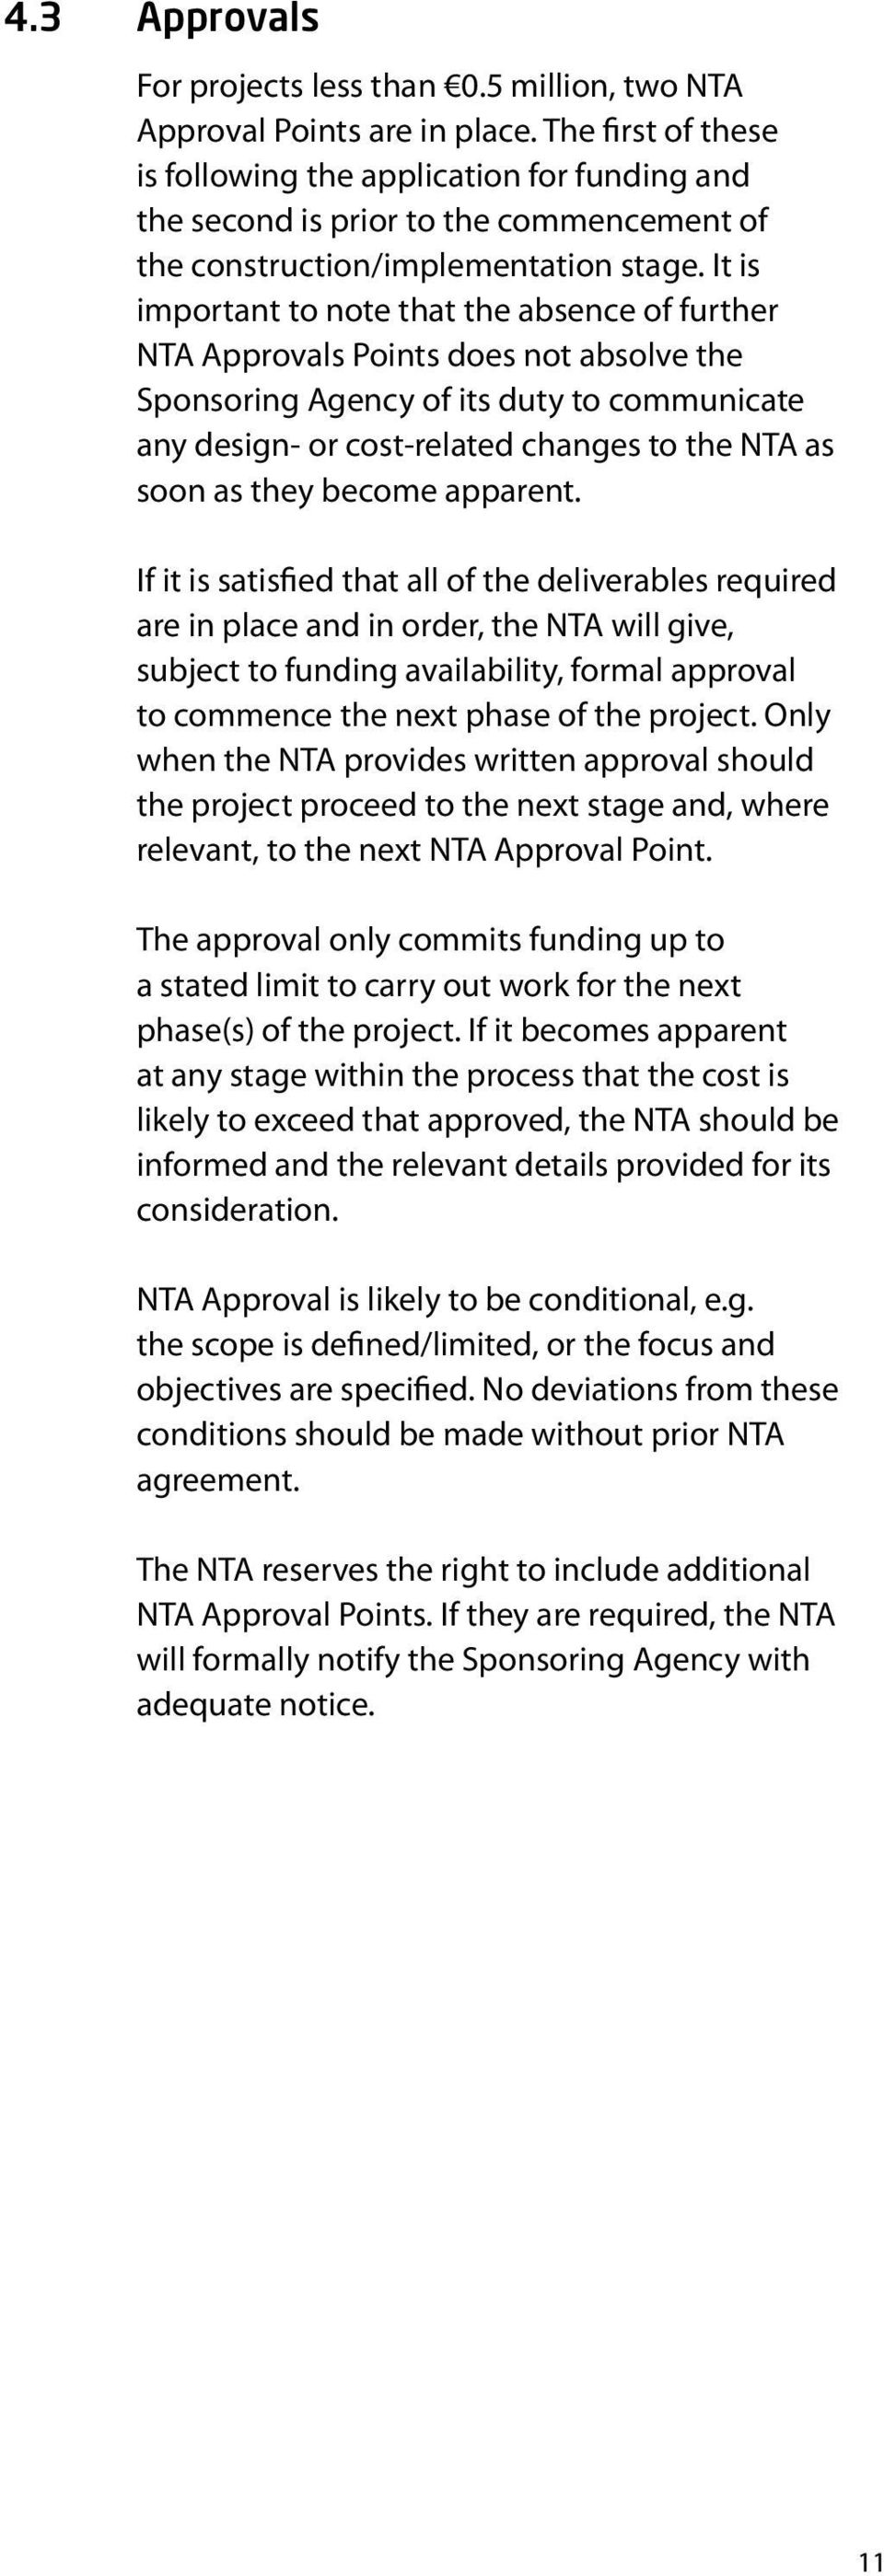 It is important to note that the absence of further NTA Approvals Points does not absolve the Sponsoring Agency of its duty to communicate any design- or cost-related changes to the NTA as soon as